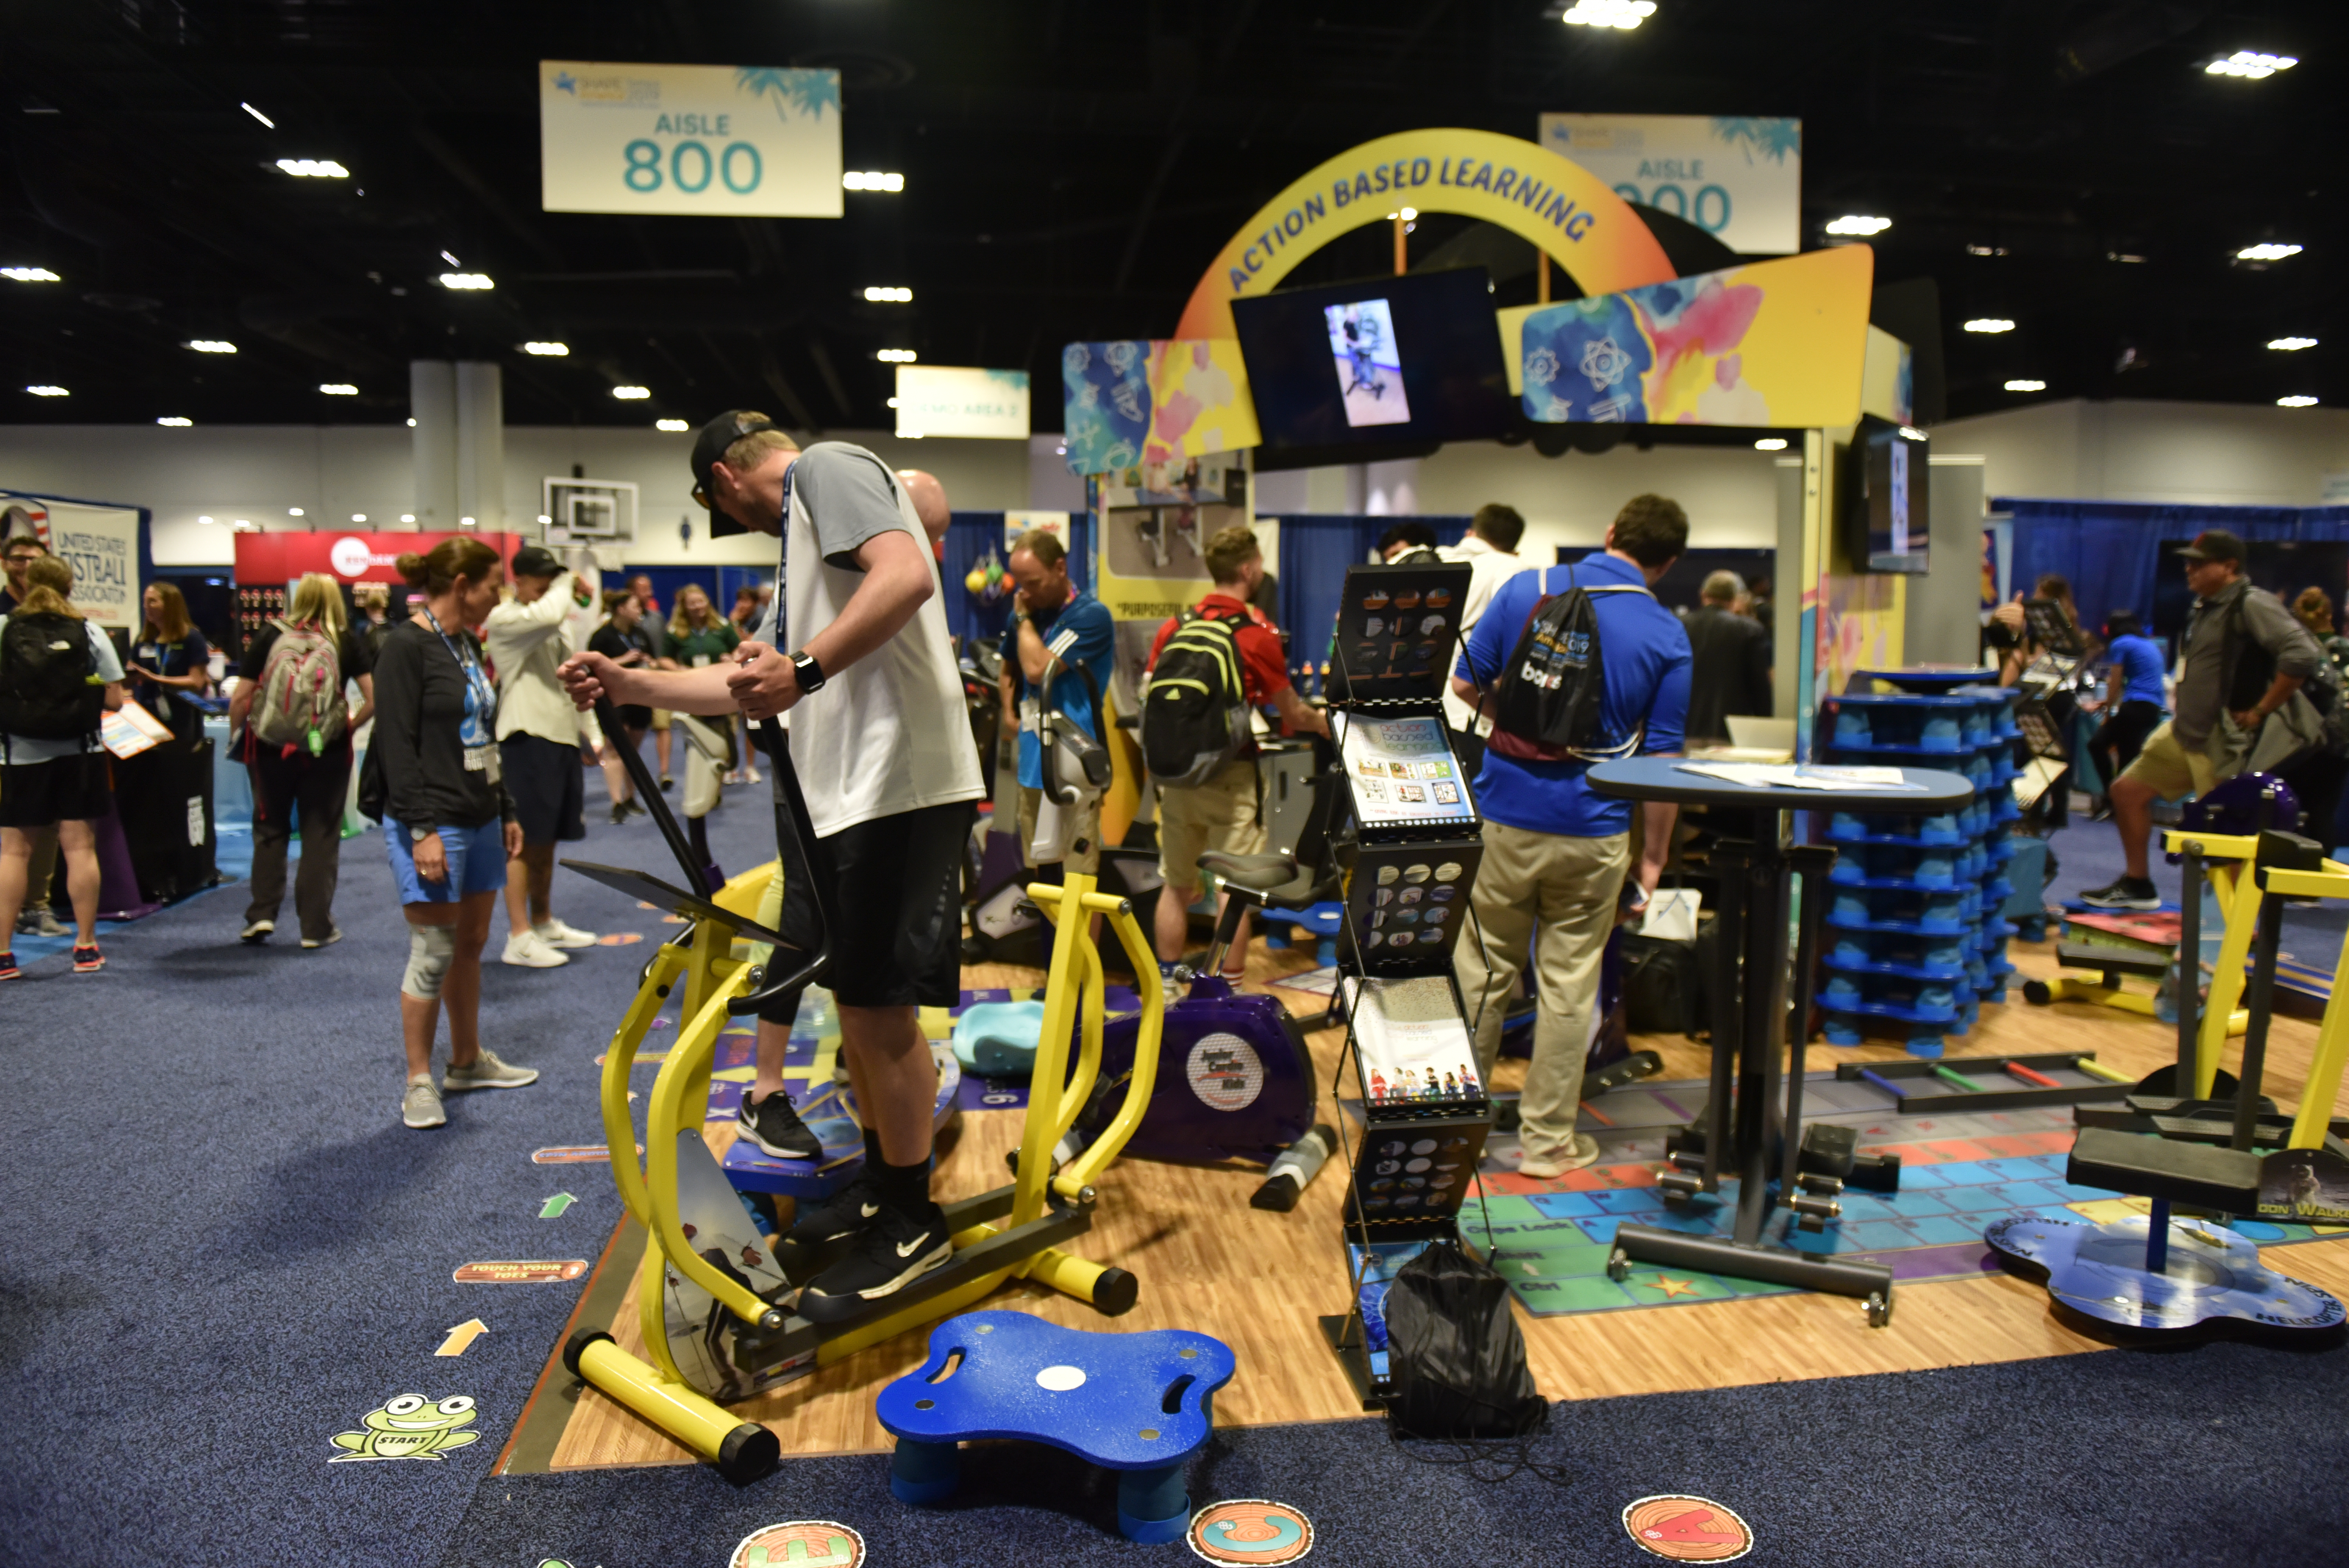 Action Based Learning Booth